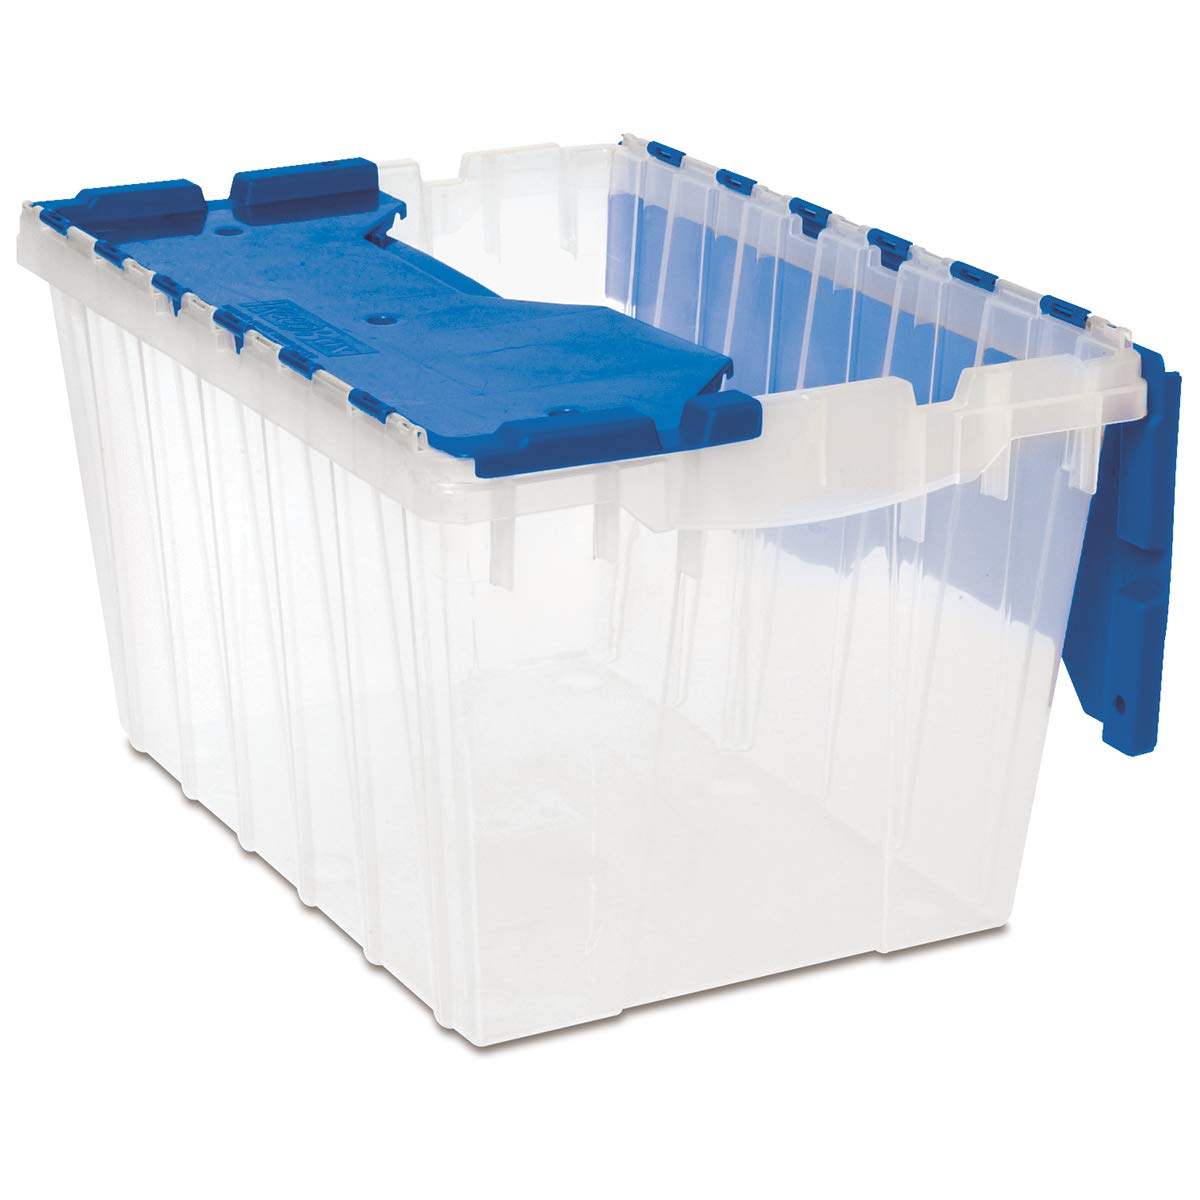 Akro-Mils 66486 CLDBL 12-Gallon Plastic Storage KeepBox with Attached Lid, 21-1/2-Inch by 15-Inch by 12-1/2-Inch, Semi Clear - Pack of 6 by Akro-Mils